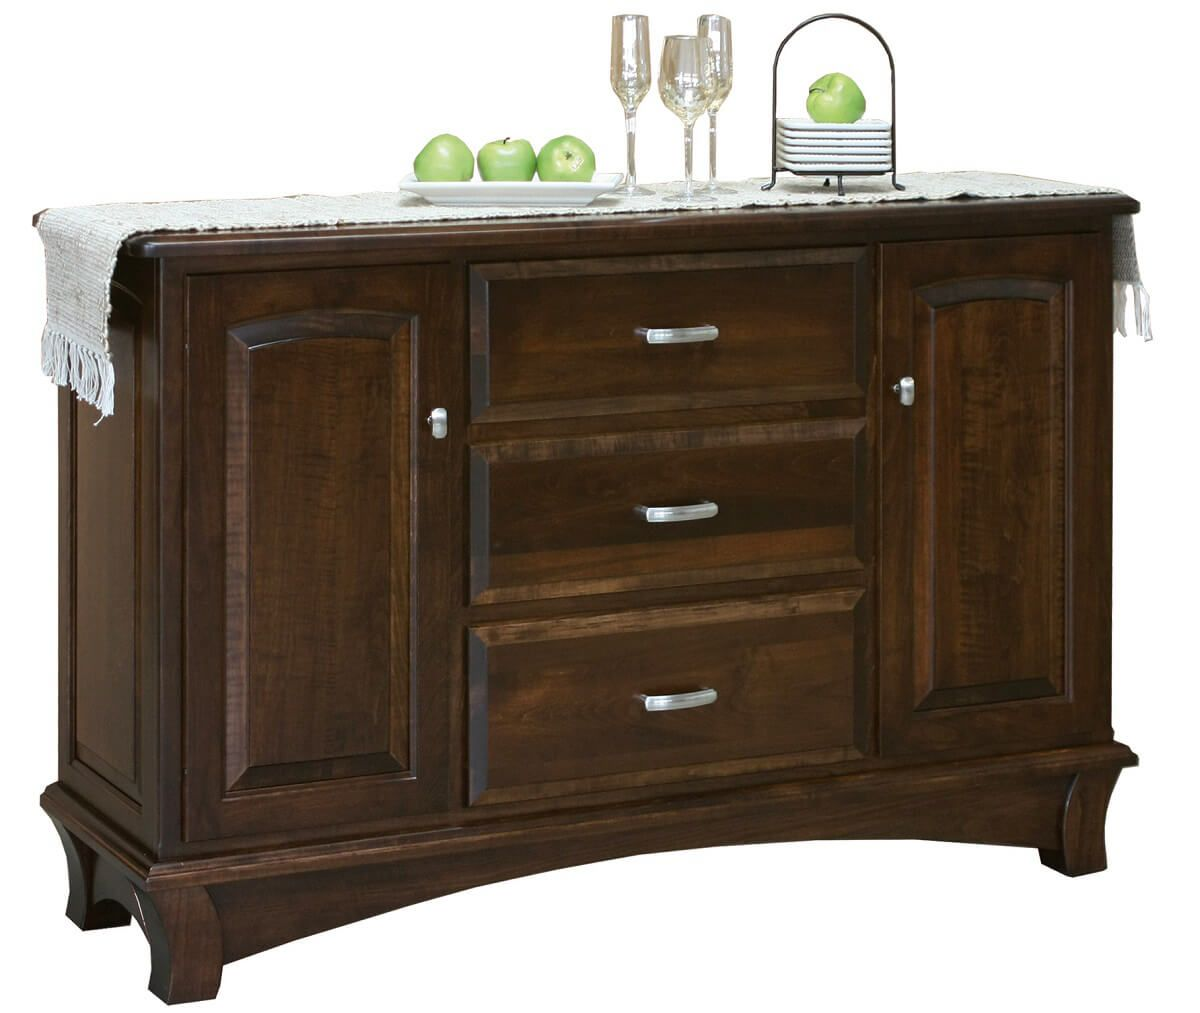 ligare dining room sideboard buffet countryside amish